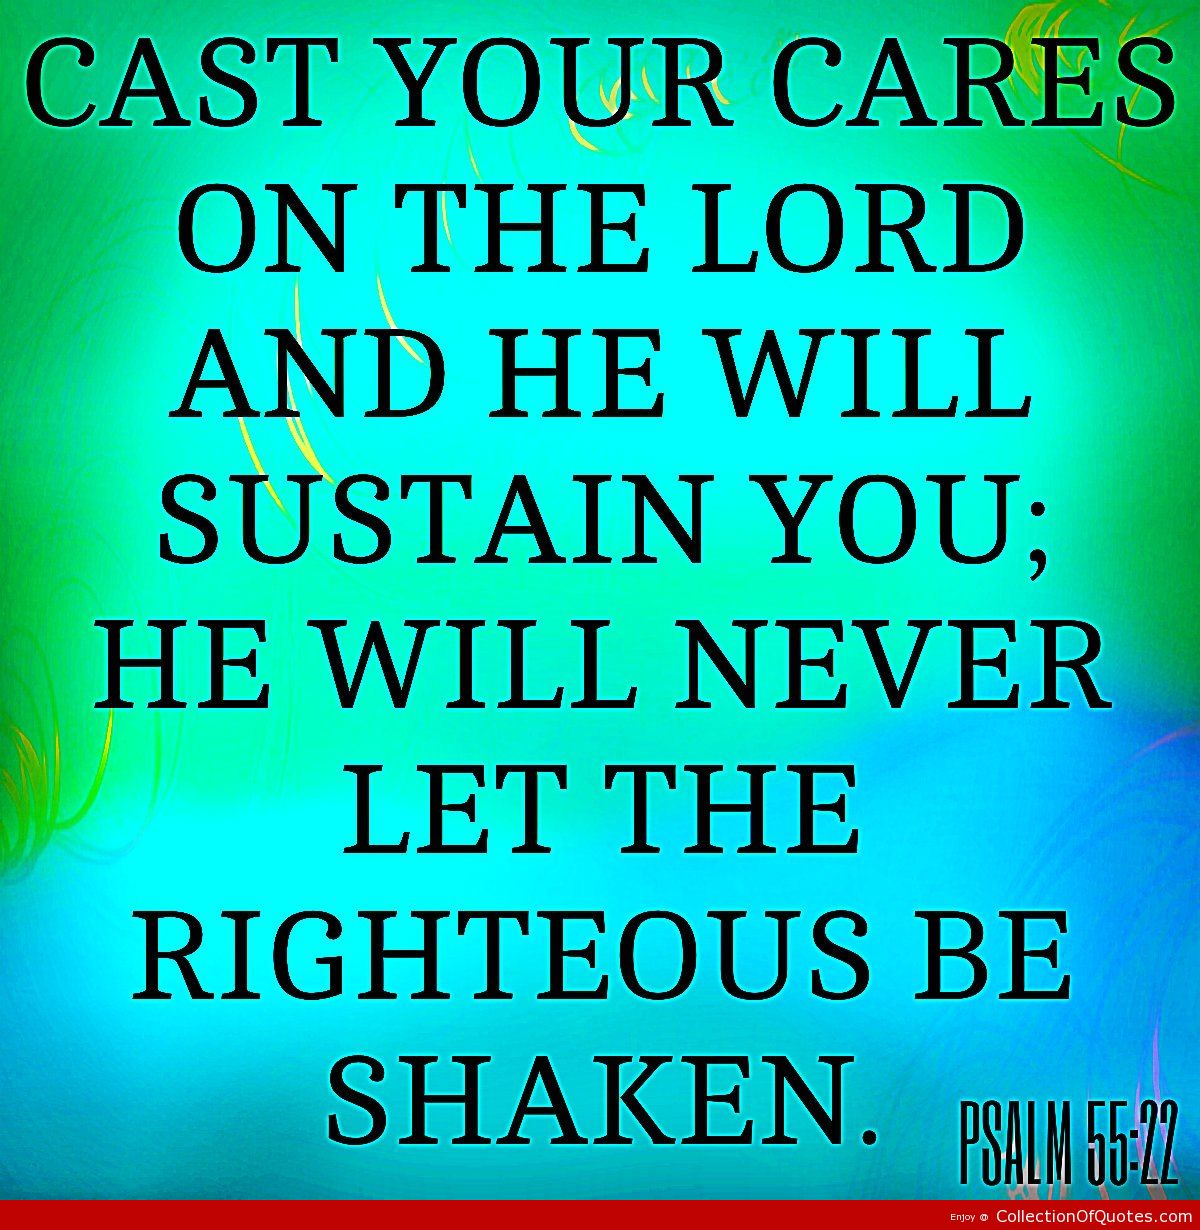 Quotes From The Bible: Righteous Quotes From The Bible. QuotesGram